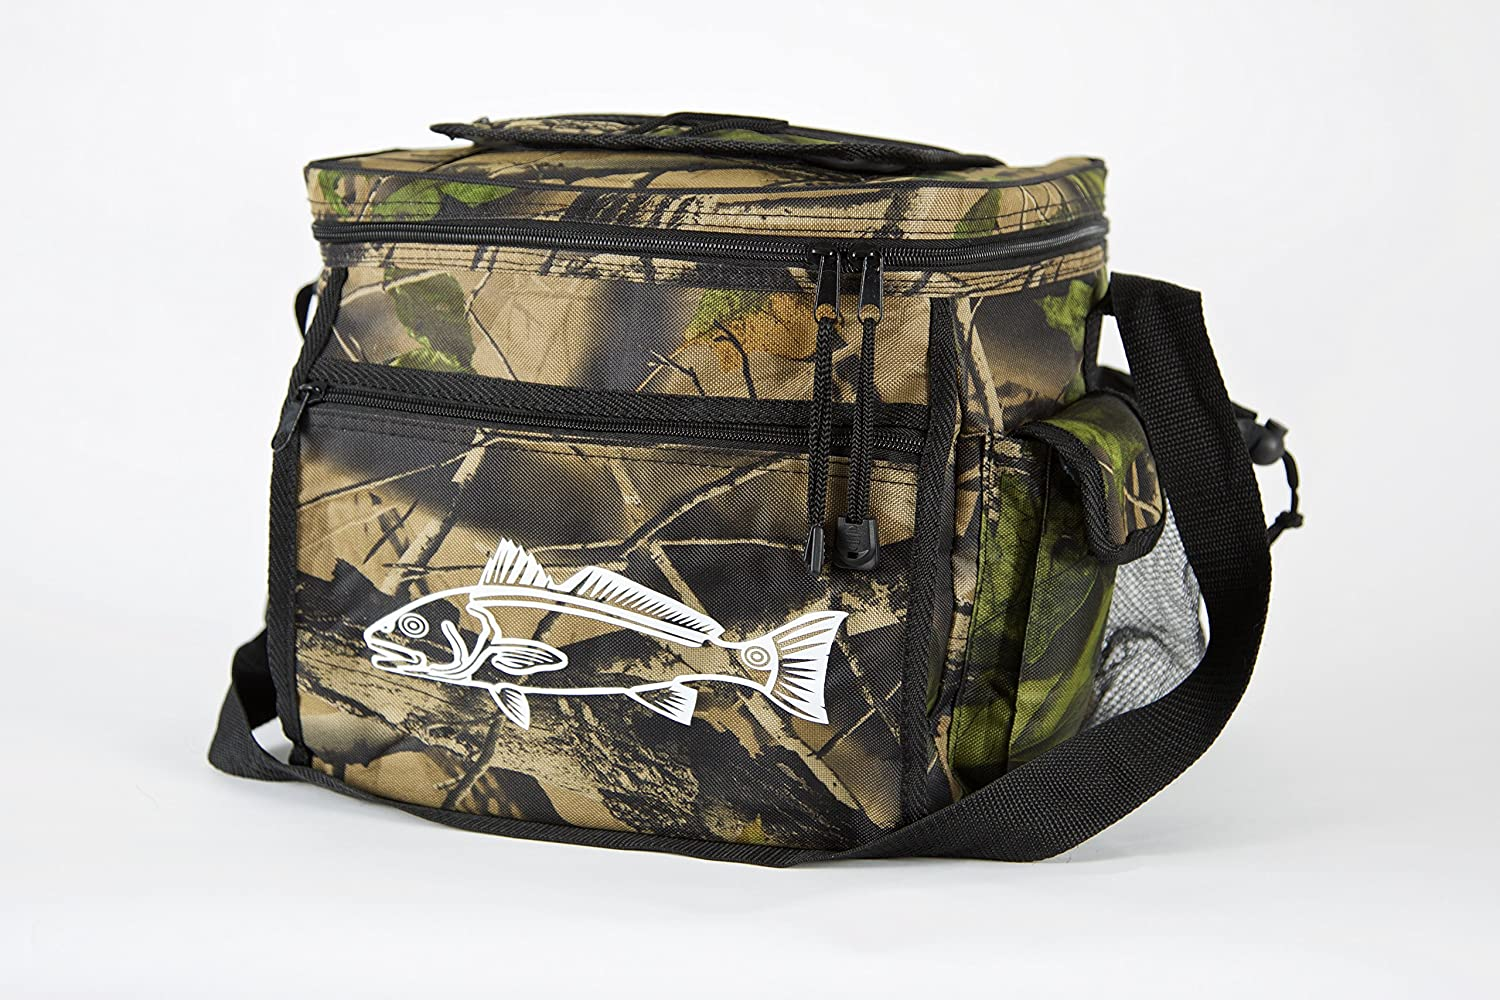 Swell Avenue Camo Cooler for Fishing, Camping or Hunting – Redfish Logo Durable Can Cooler with 24 Can Capacity and Heat Sealed Interior – Perfect Camo Lunchbox or Ice Chest